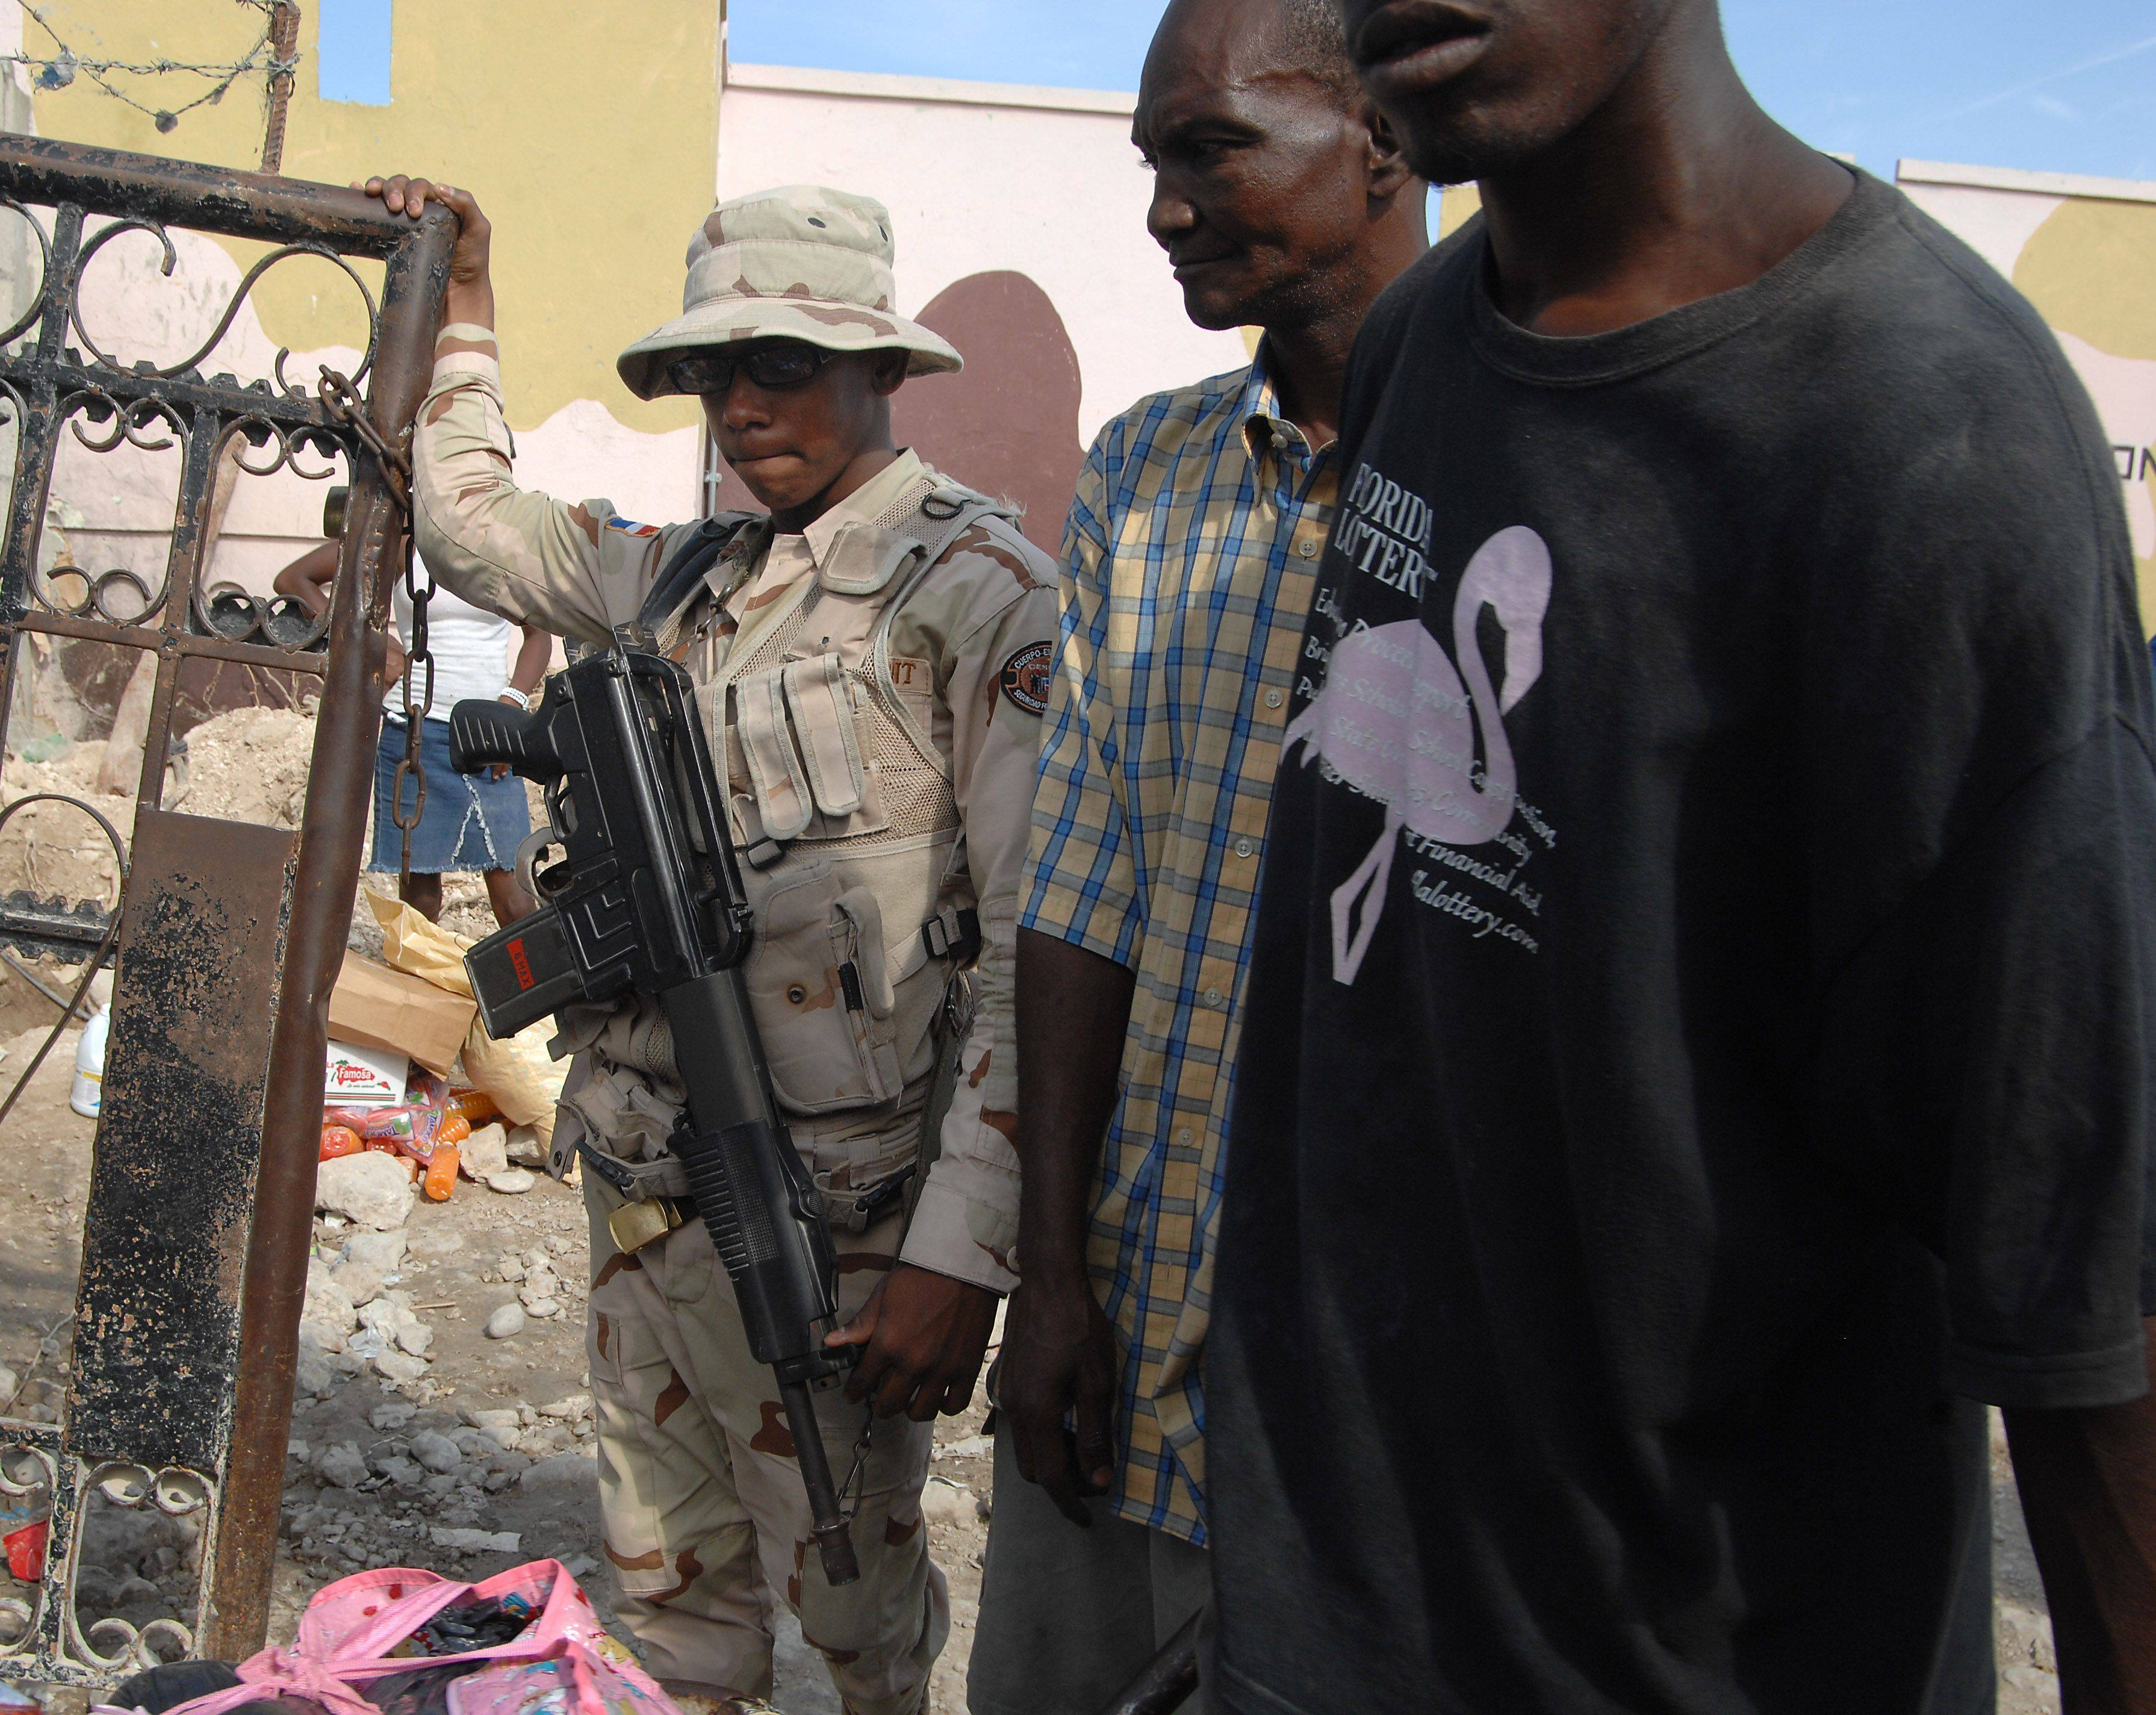 Armed border guards at the boundary of Haiti and the Dominican Republic keep the peace.